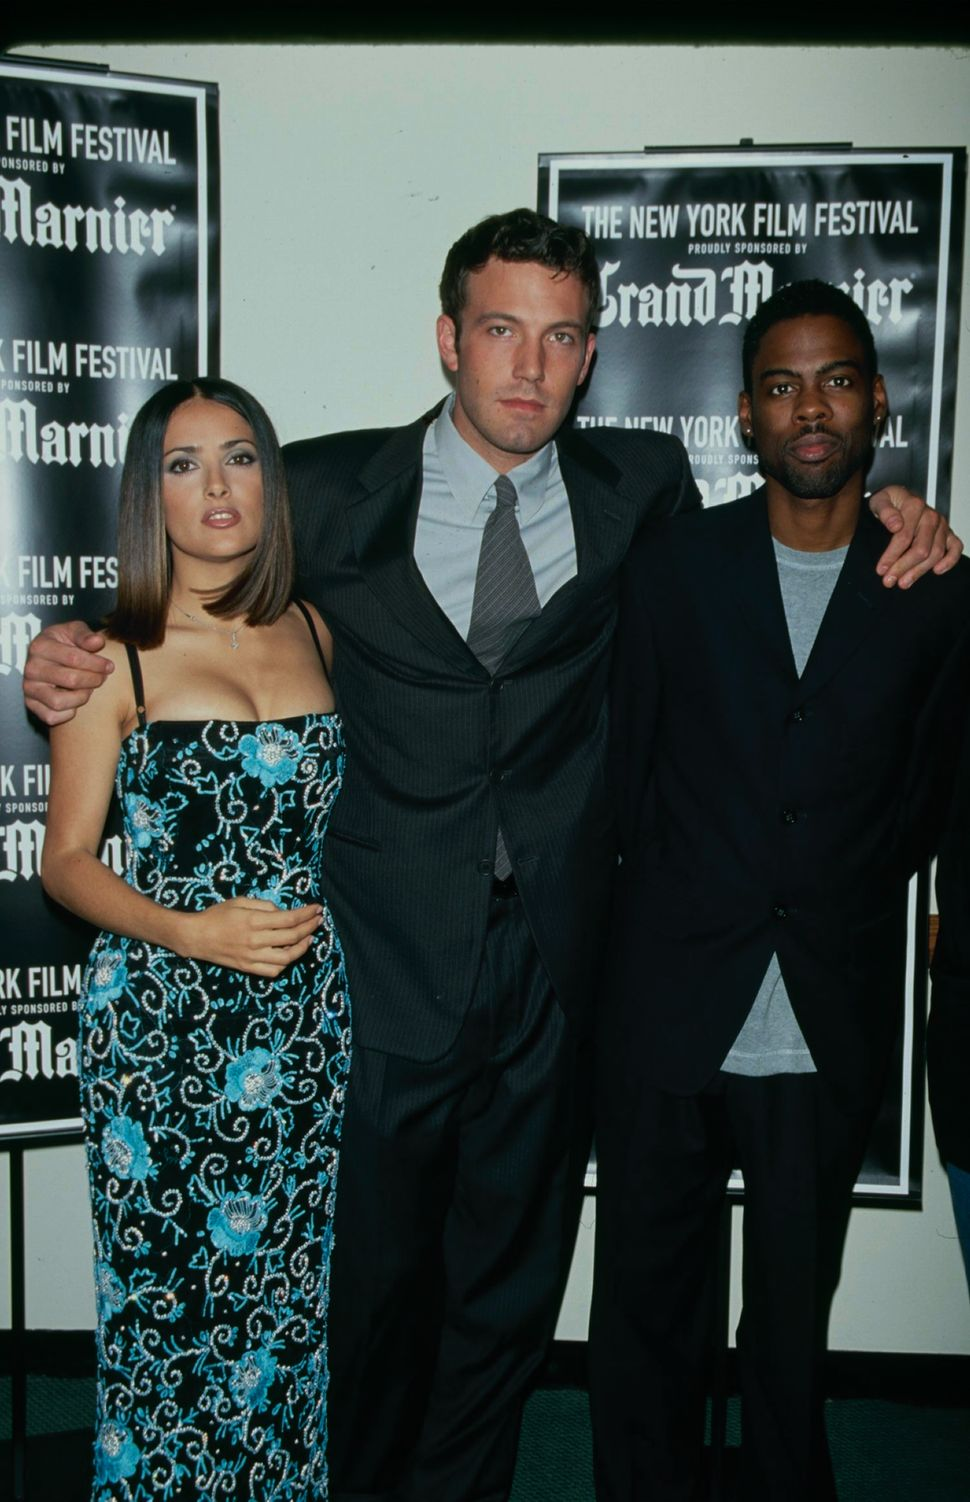 1999: Actors Salma Hayek, Ben Affleck and Chris Rock promote the film 'Dogma' at the New York Film Festival. (Photo by The LI